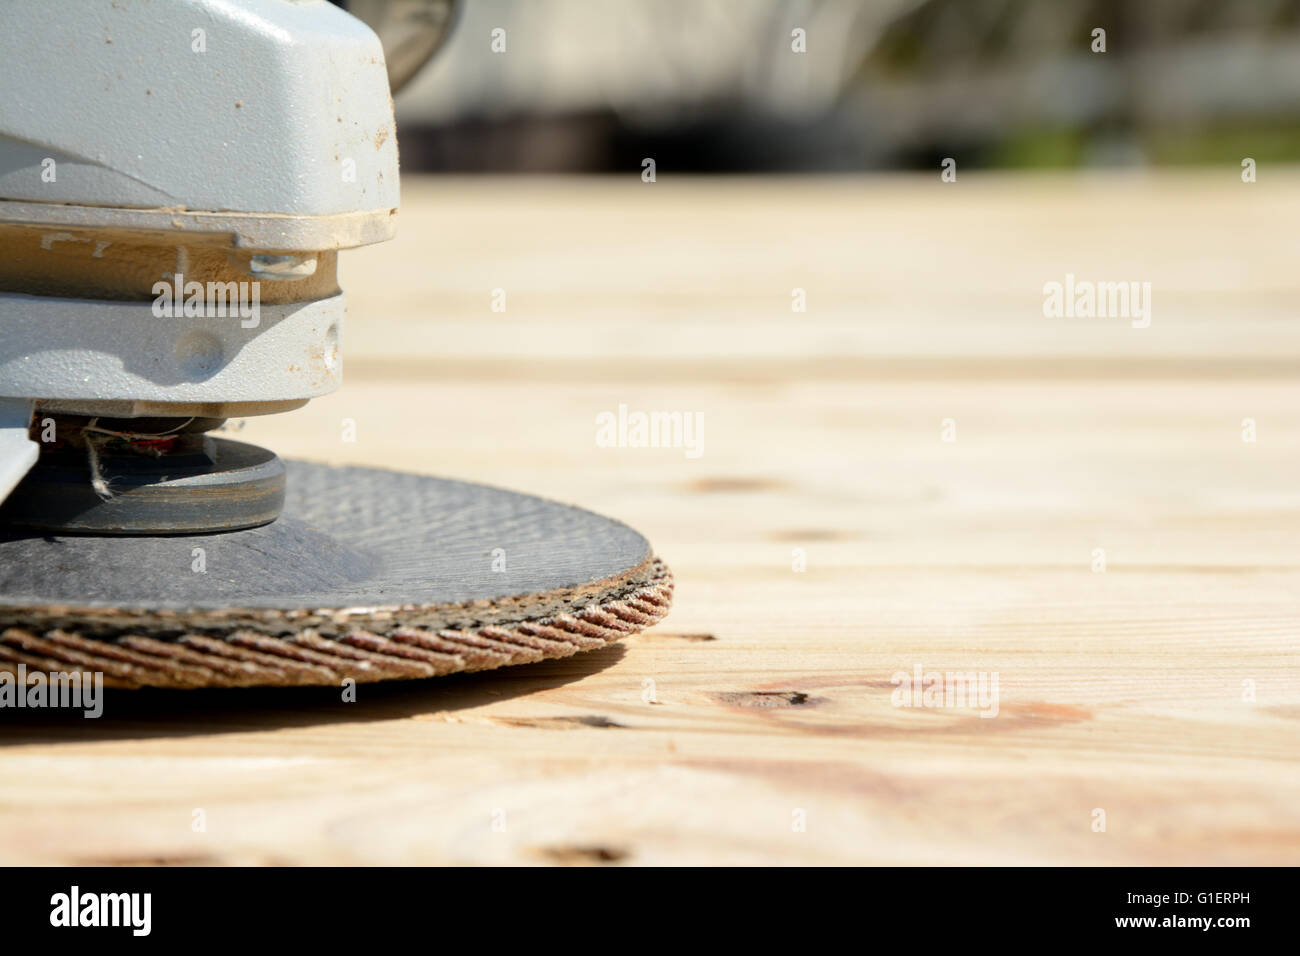 Front part of angle grinder with abrasive disc on planks after work. Shallow depth of field. - Stock Image